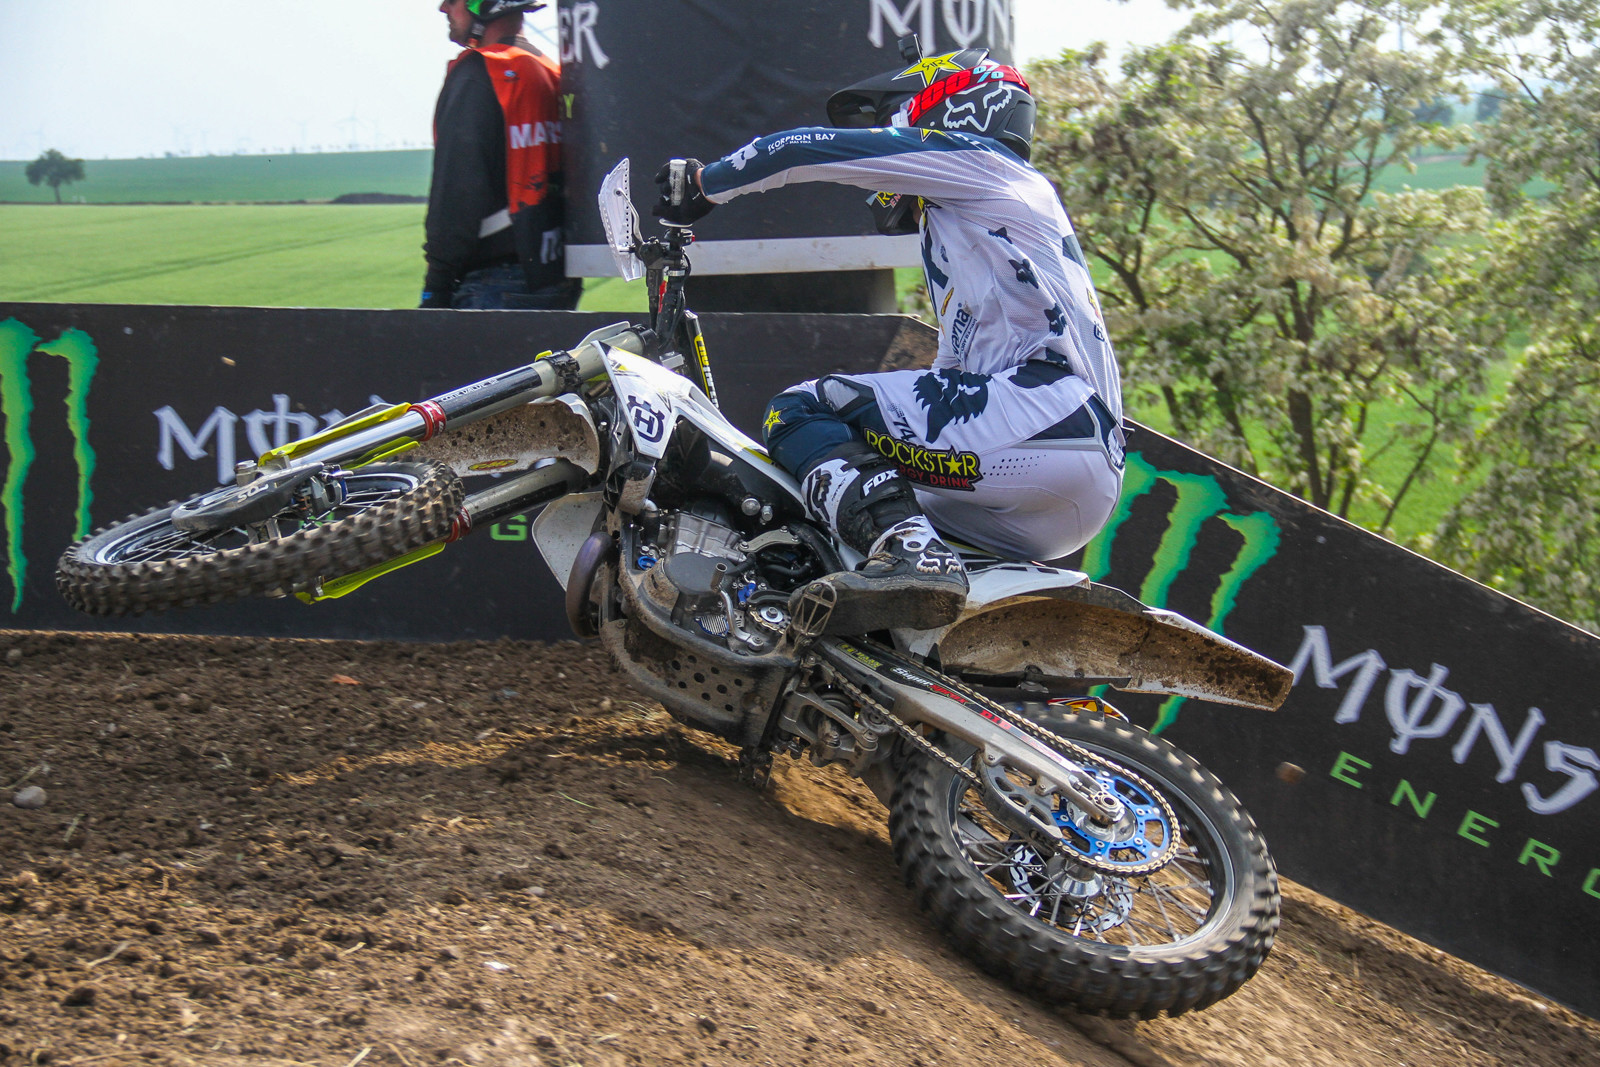 Gautier Paulin laying it down on the way to a podium position, with third.